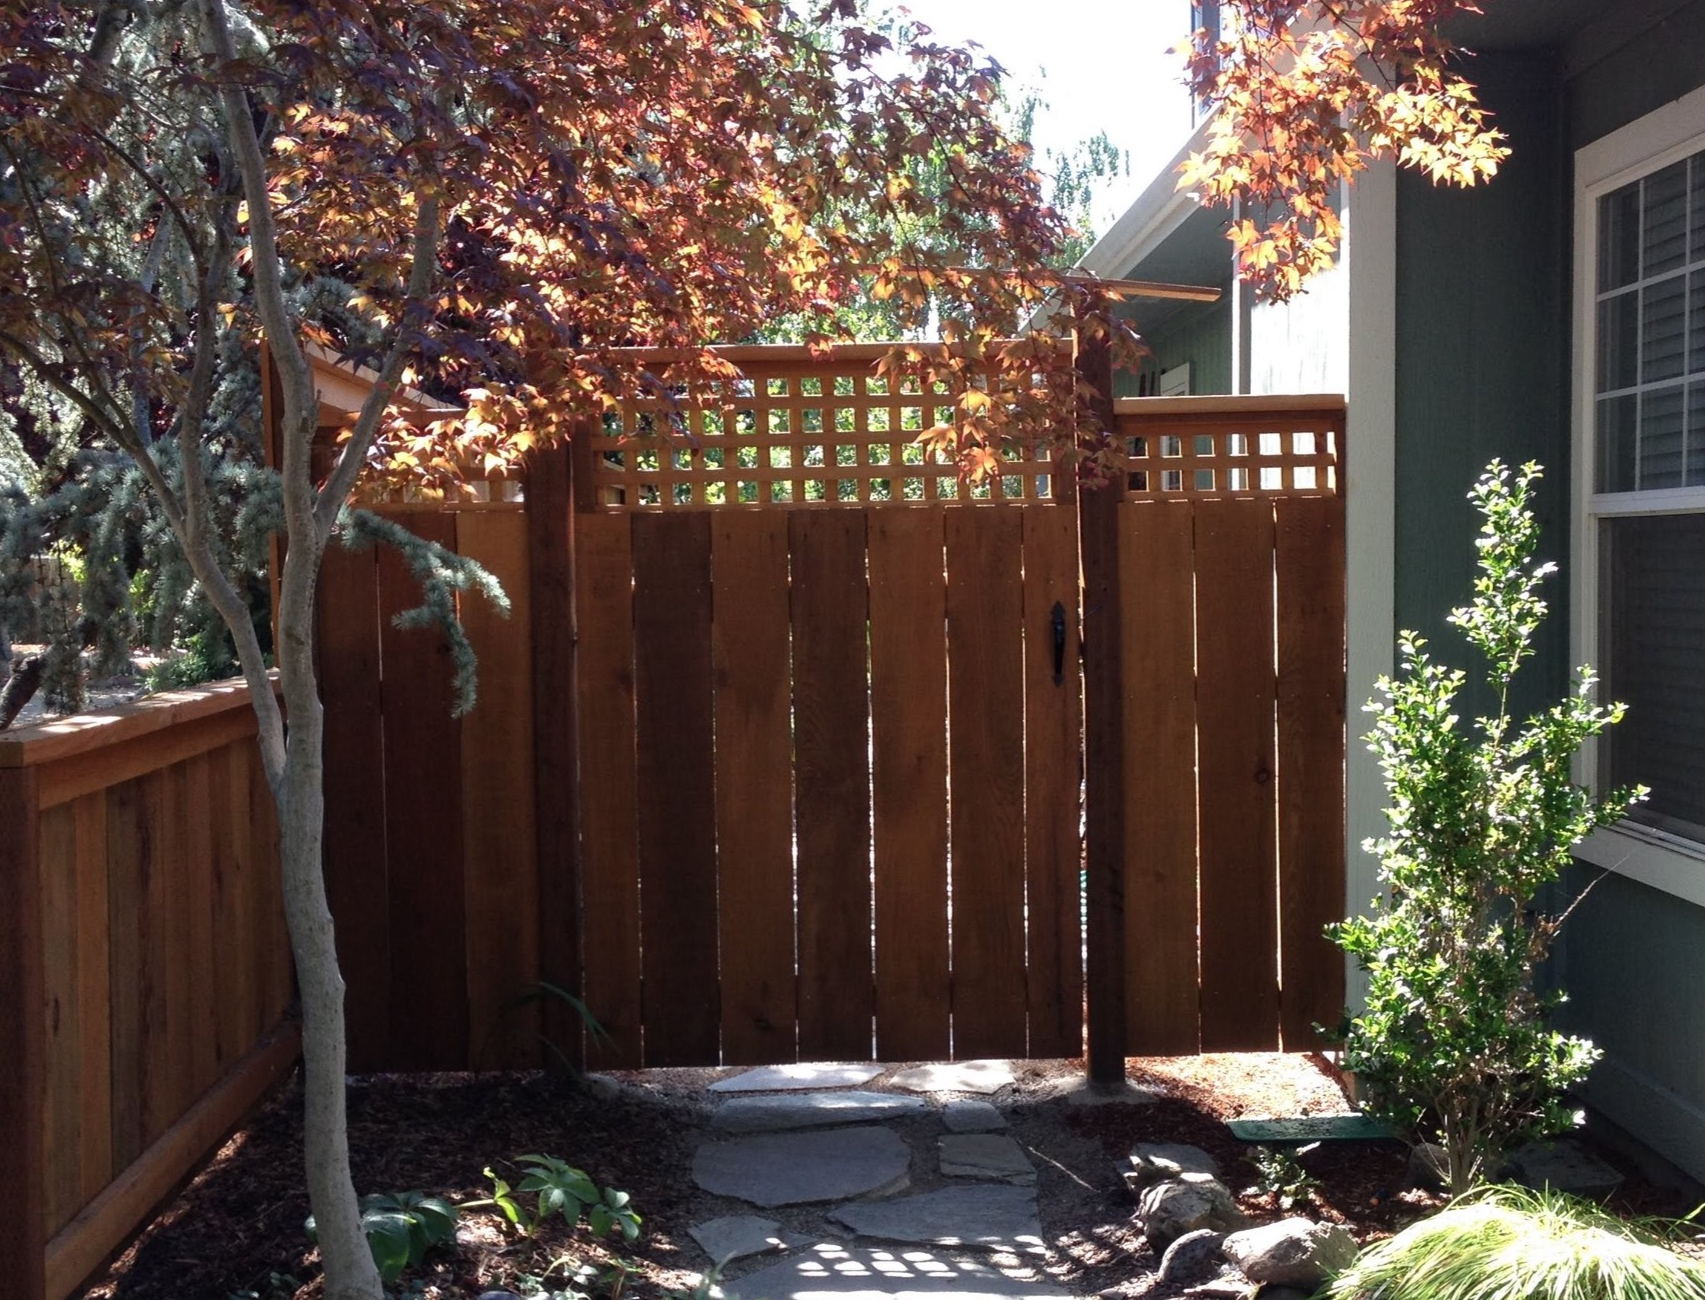 Construction-Fences, Decks, Arbors - We build beautiful fences and gates to frame in your garden and keep the deer out. We can also do custom work like Arbors, bridges, pergolas, and more.